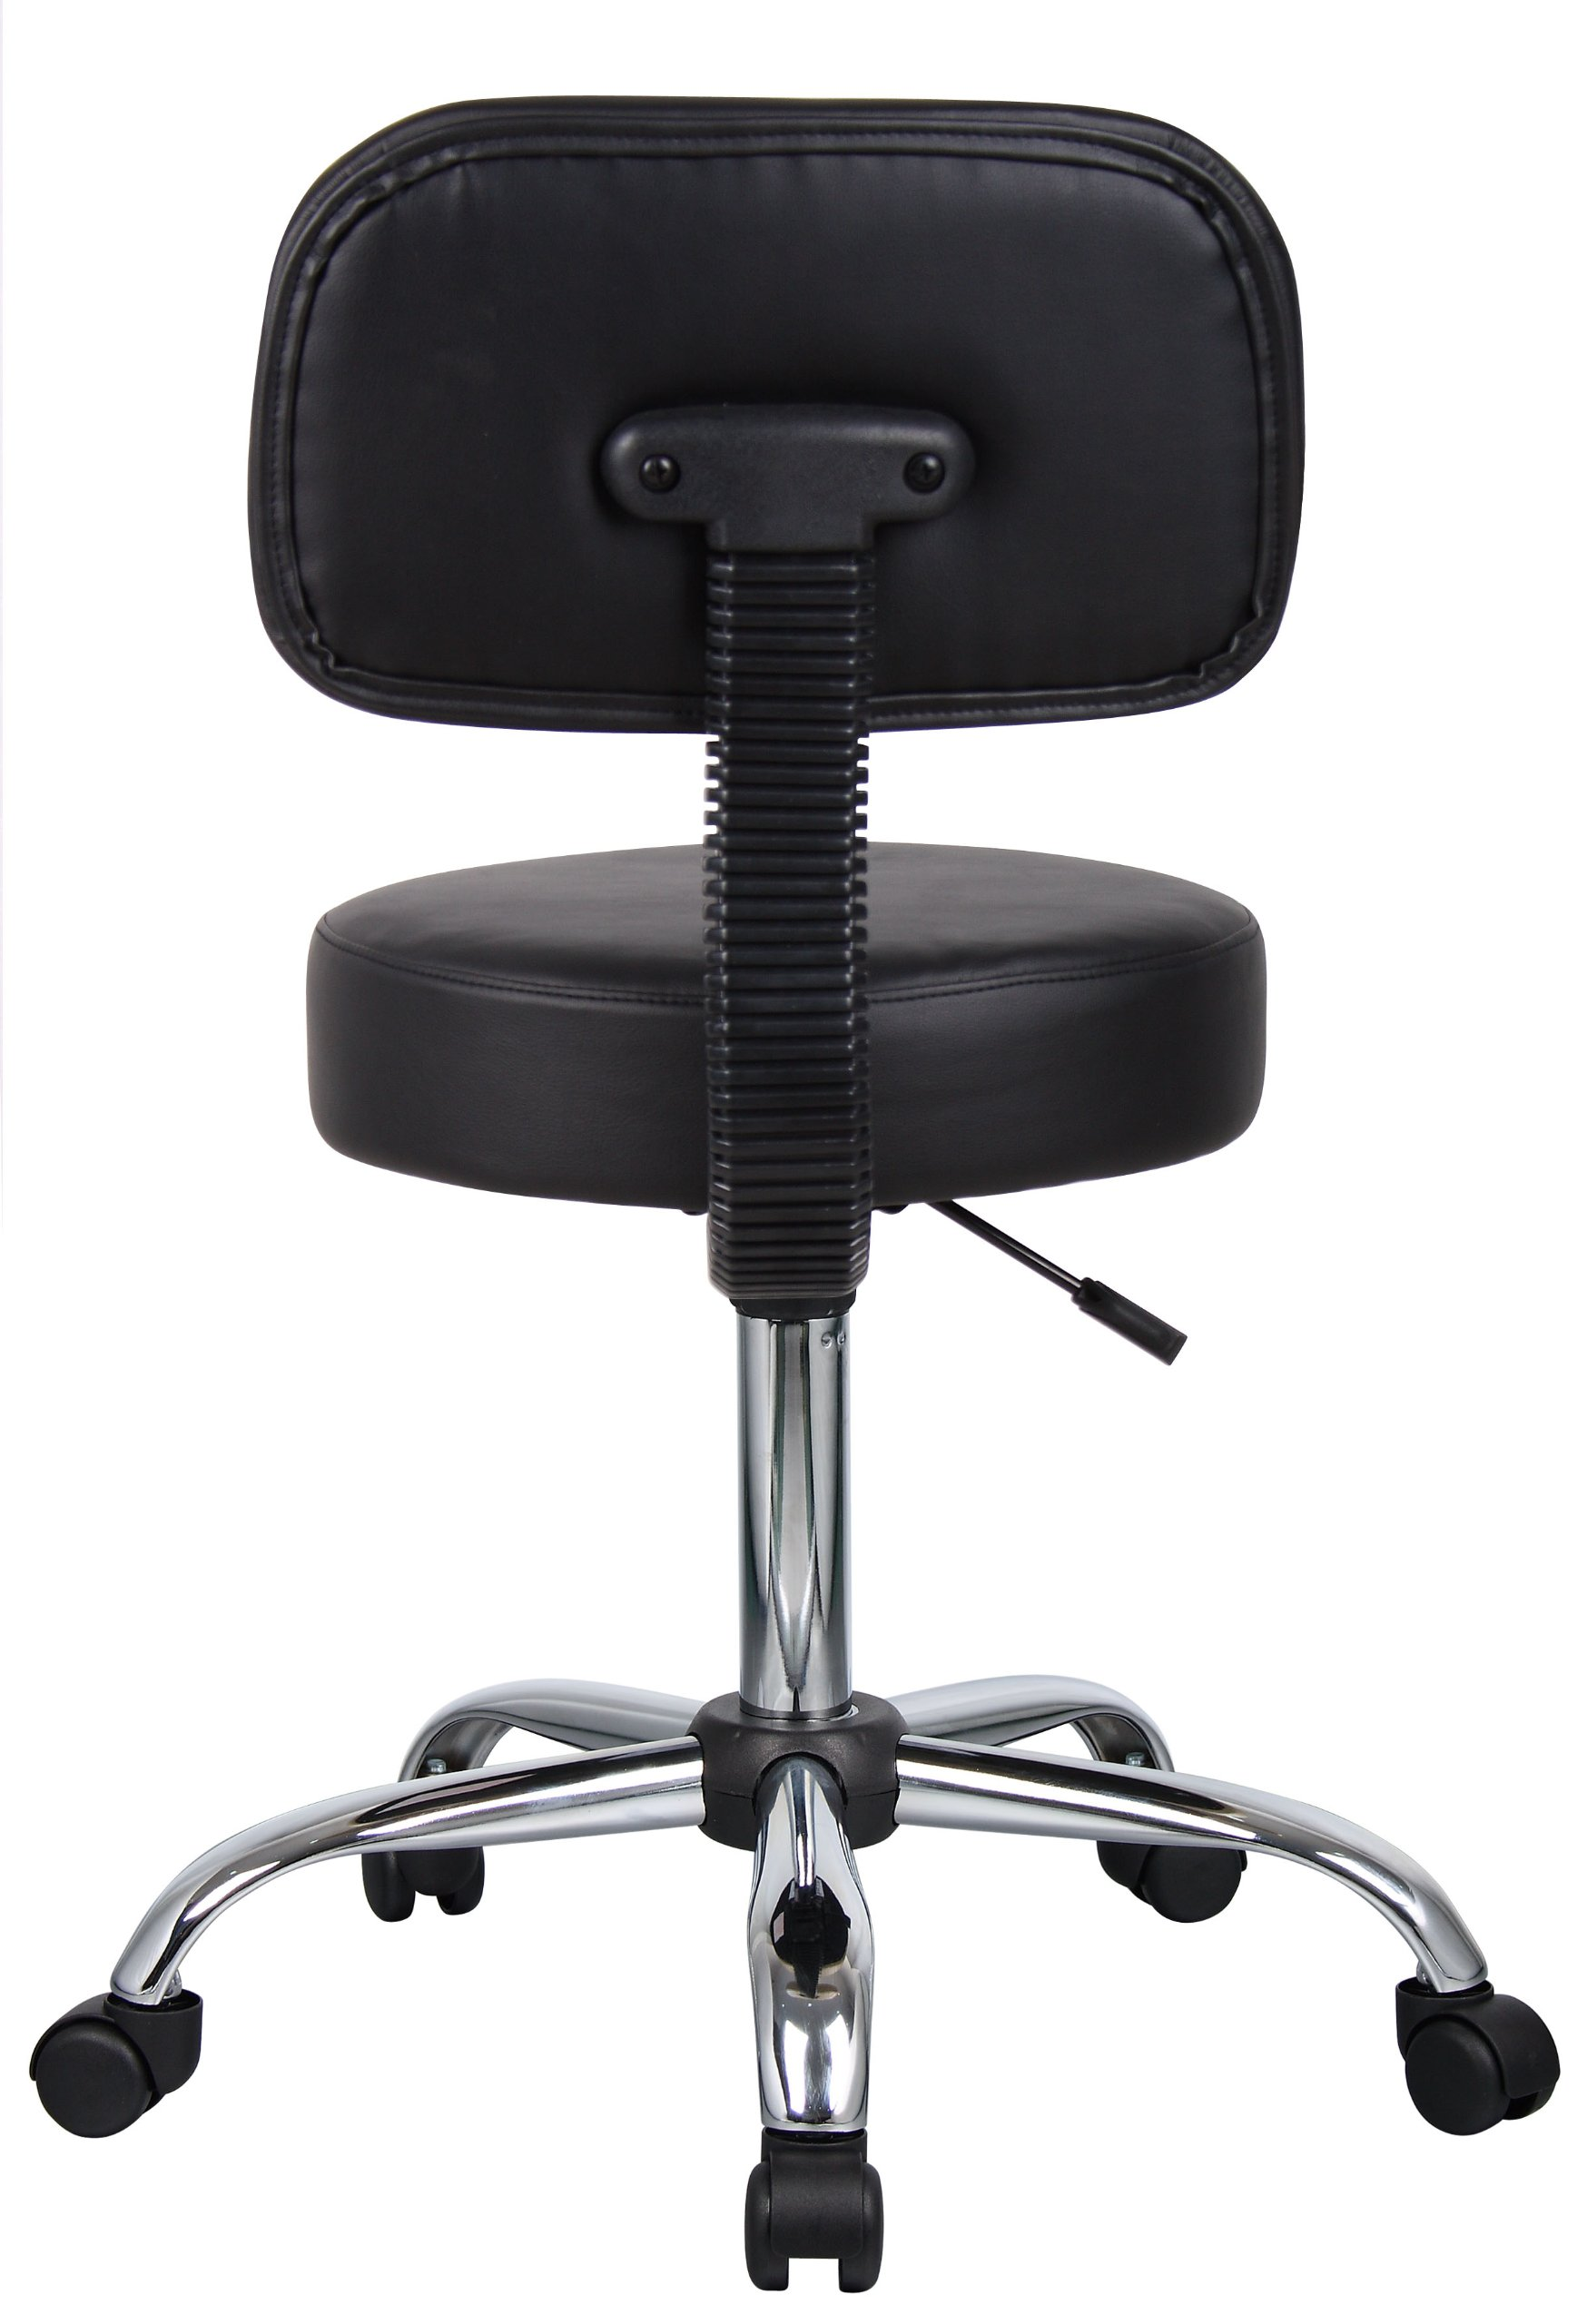 Boss Office Products B245-BK Be Well Medical Spa Stool with Back in Black by Boss Office Products (Image #2)